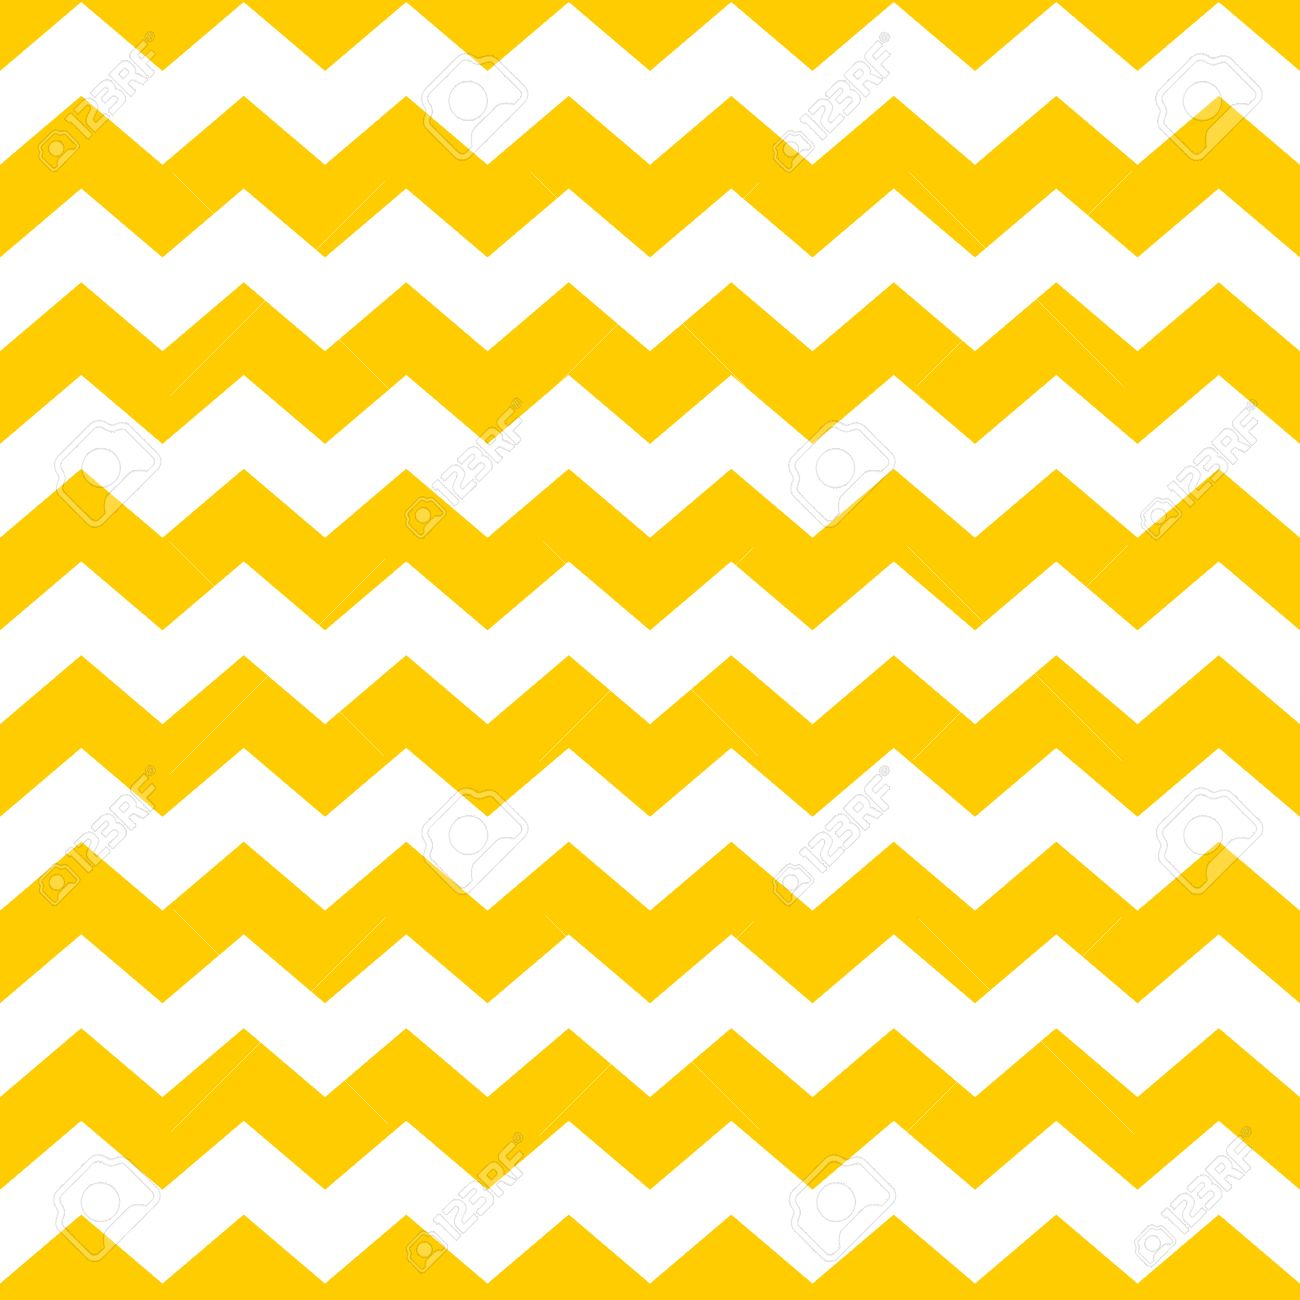 tile chevron vector pattern with yellow and white zig zag background rh 123rf com Grey Chevron Design Vector seamless chevron pattern vector